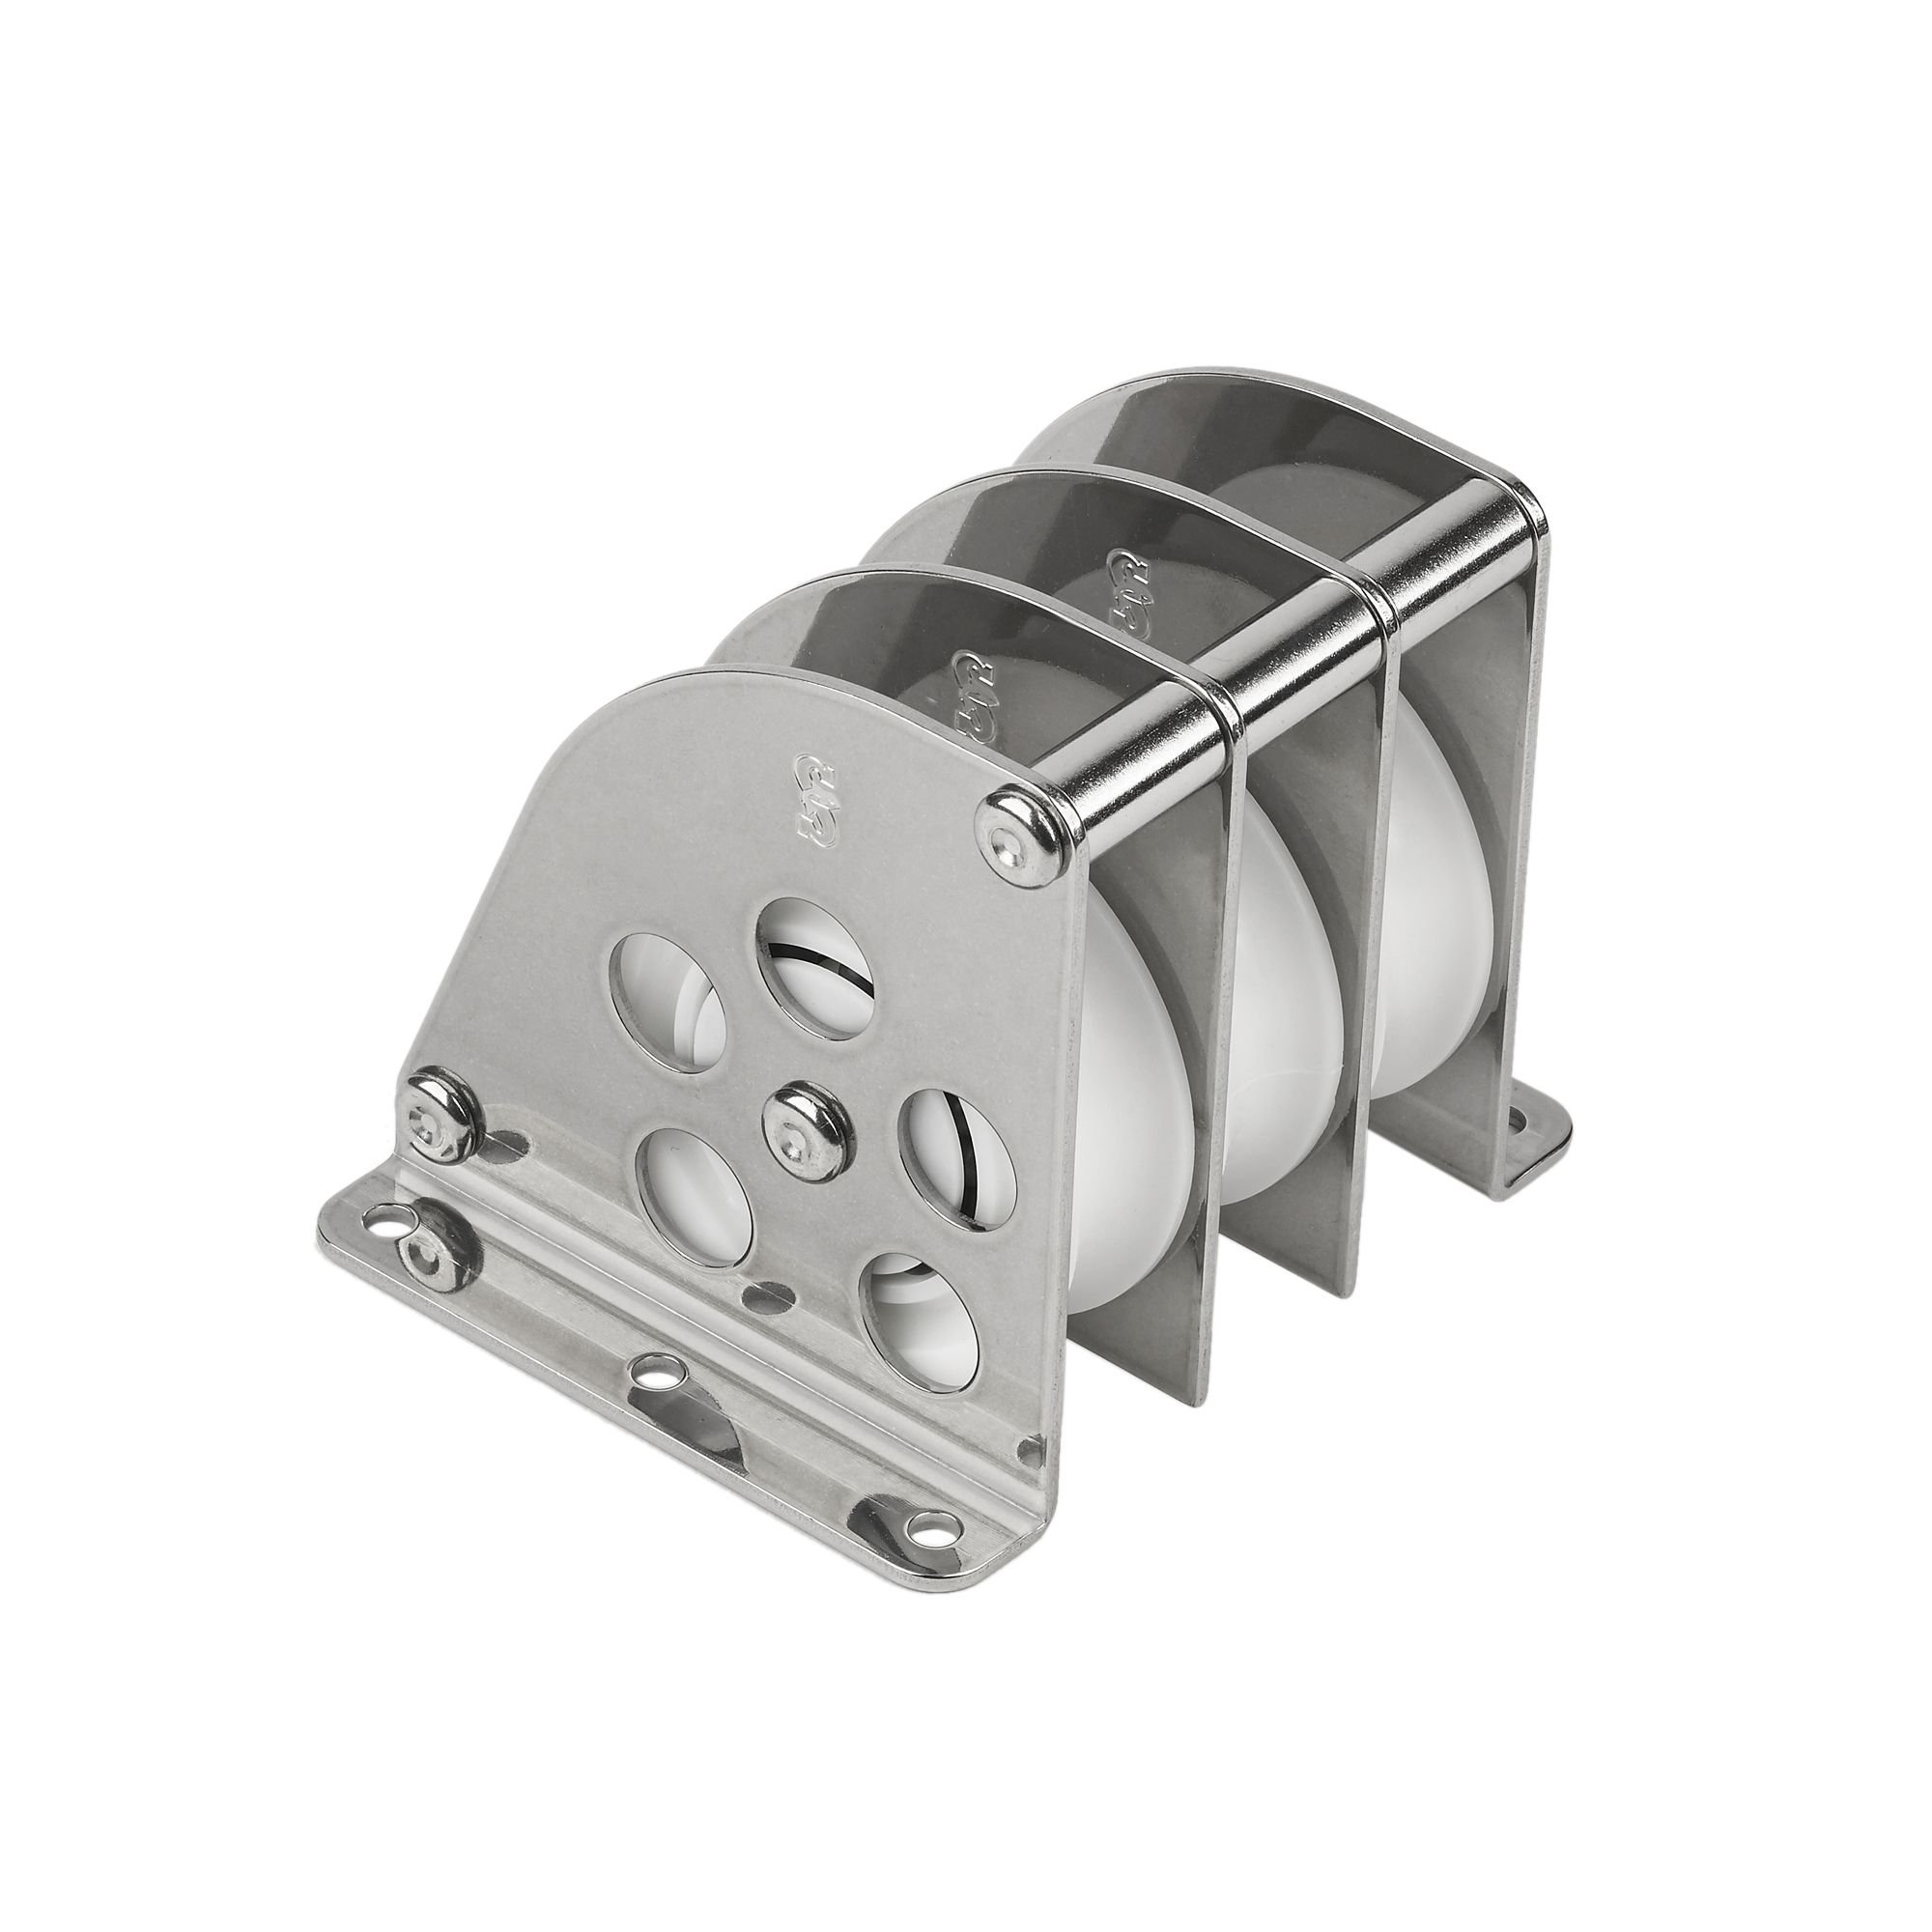 Schaefer 7 Series Triple Over-The-Top Block, Stainless Cage and Delrin Ball Bearing Sheave